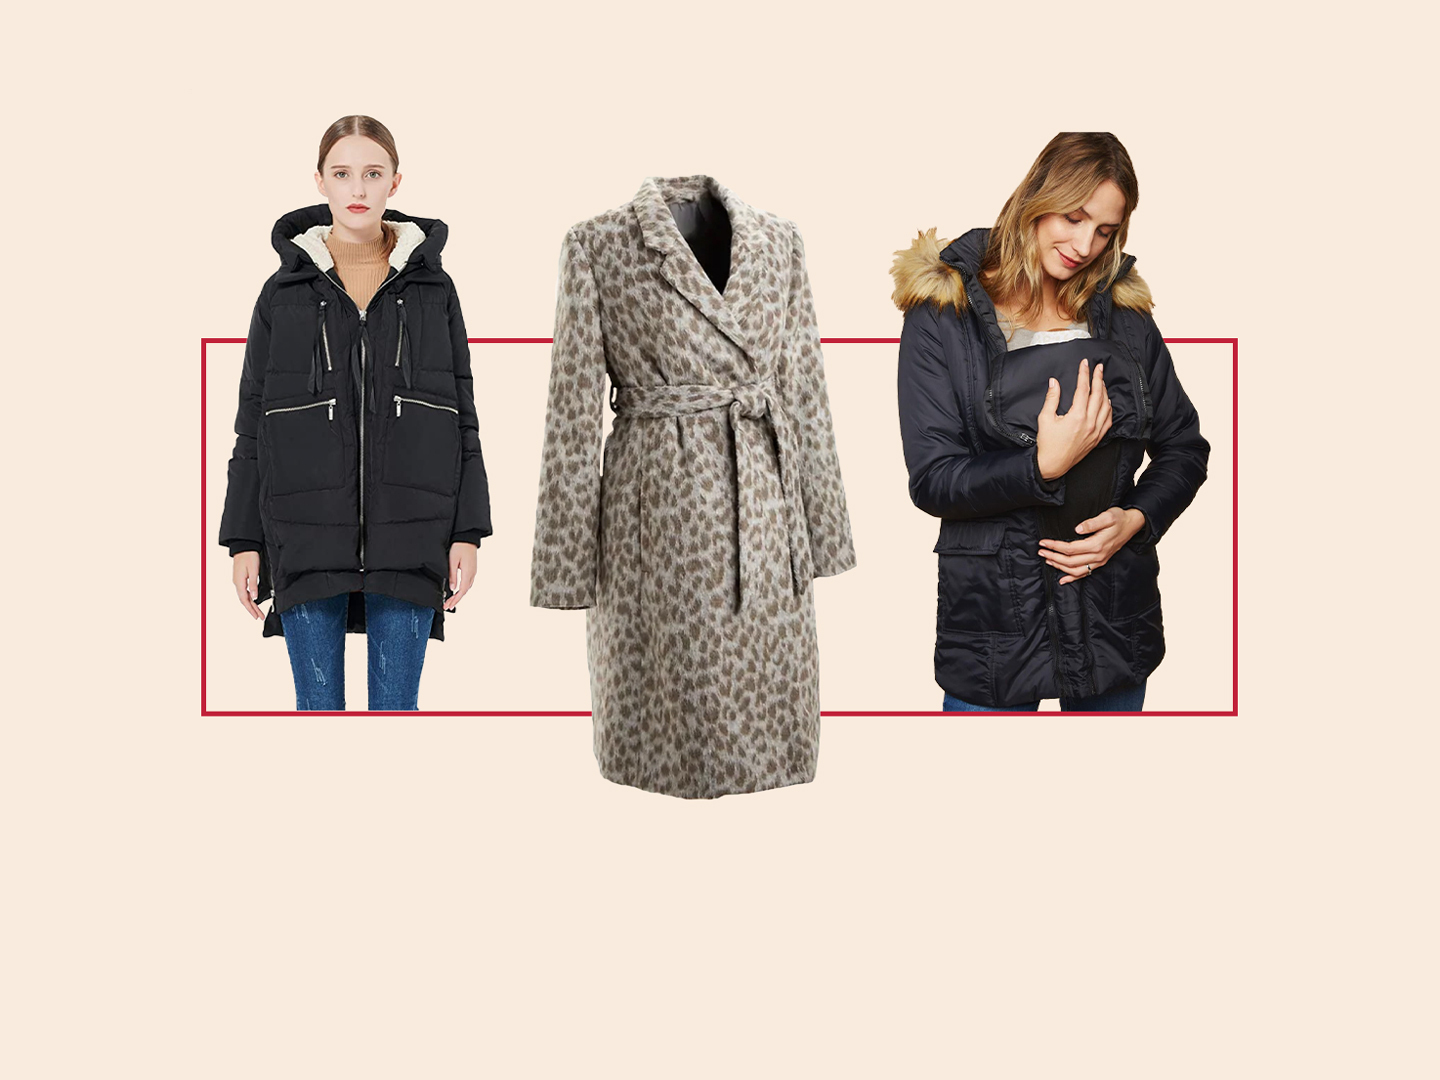 Stylish Winter Coats That Fit Over a Pregnant Belly